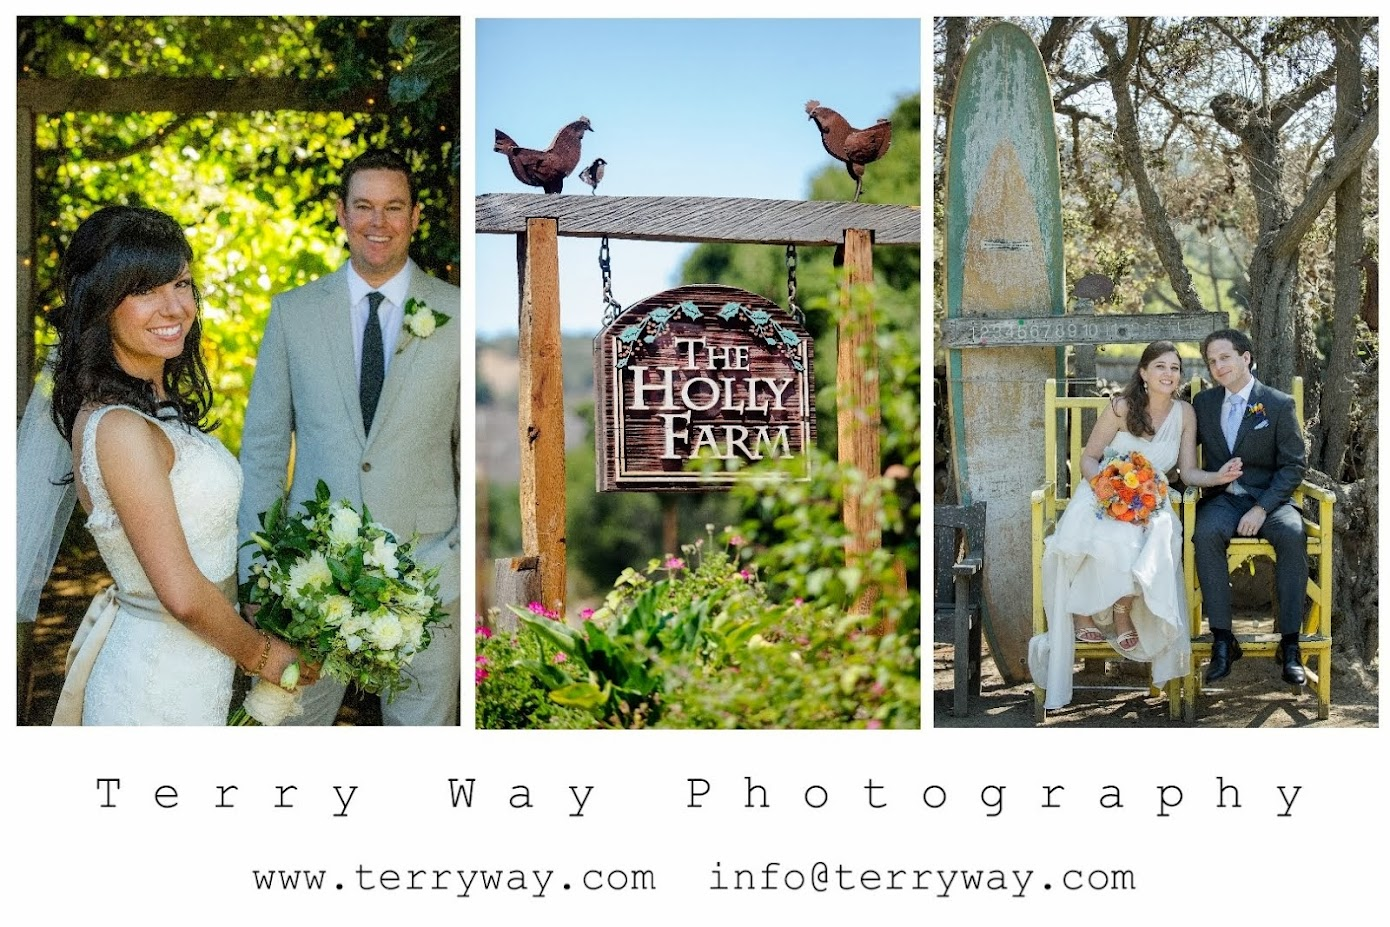 Holly Farm Carmel Wedding Photography- Terry Way Photography